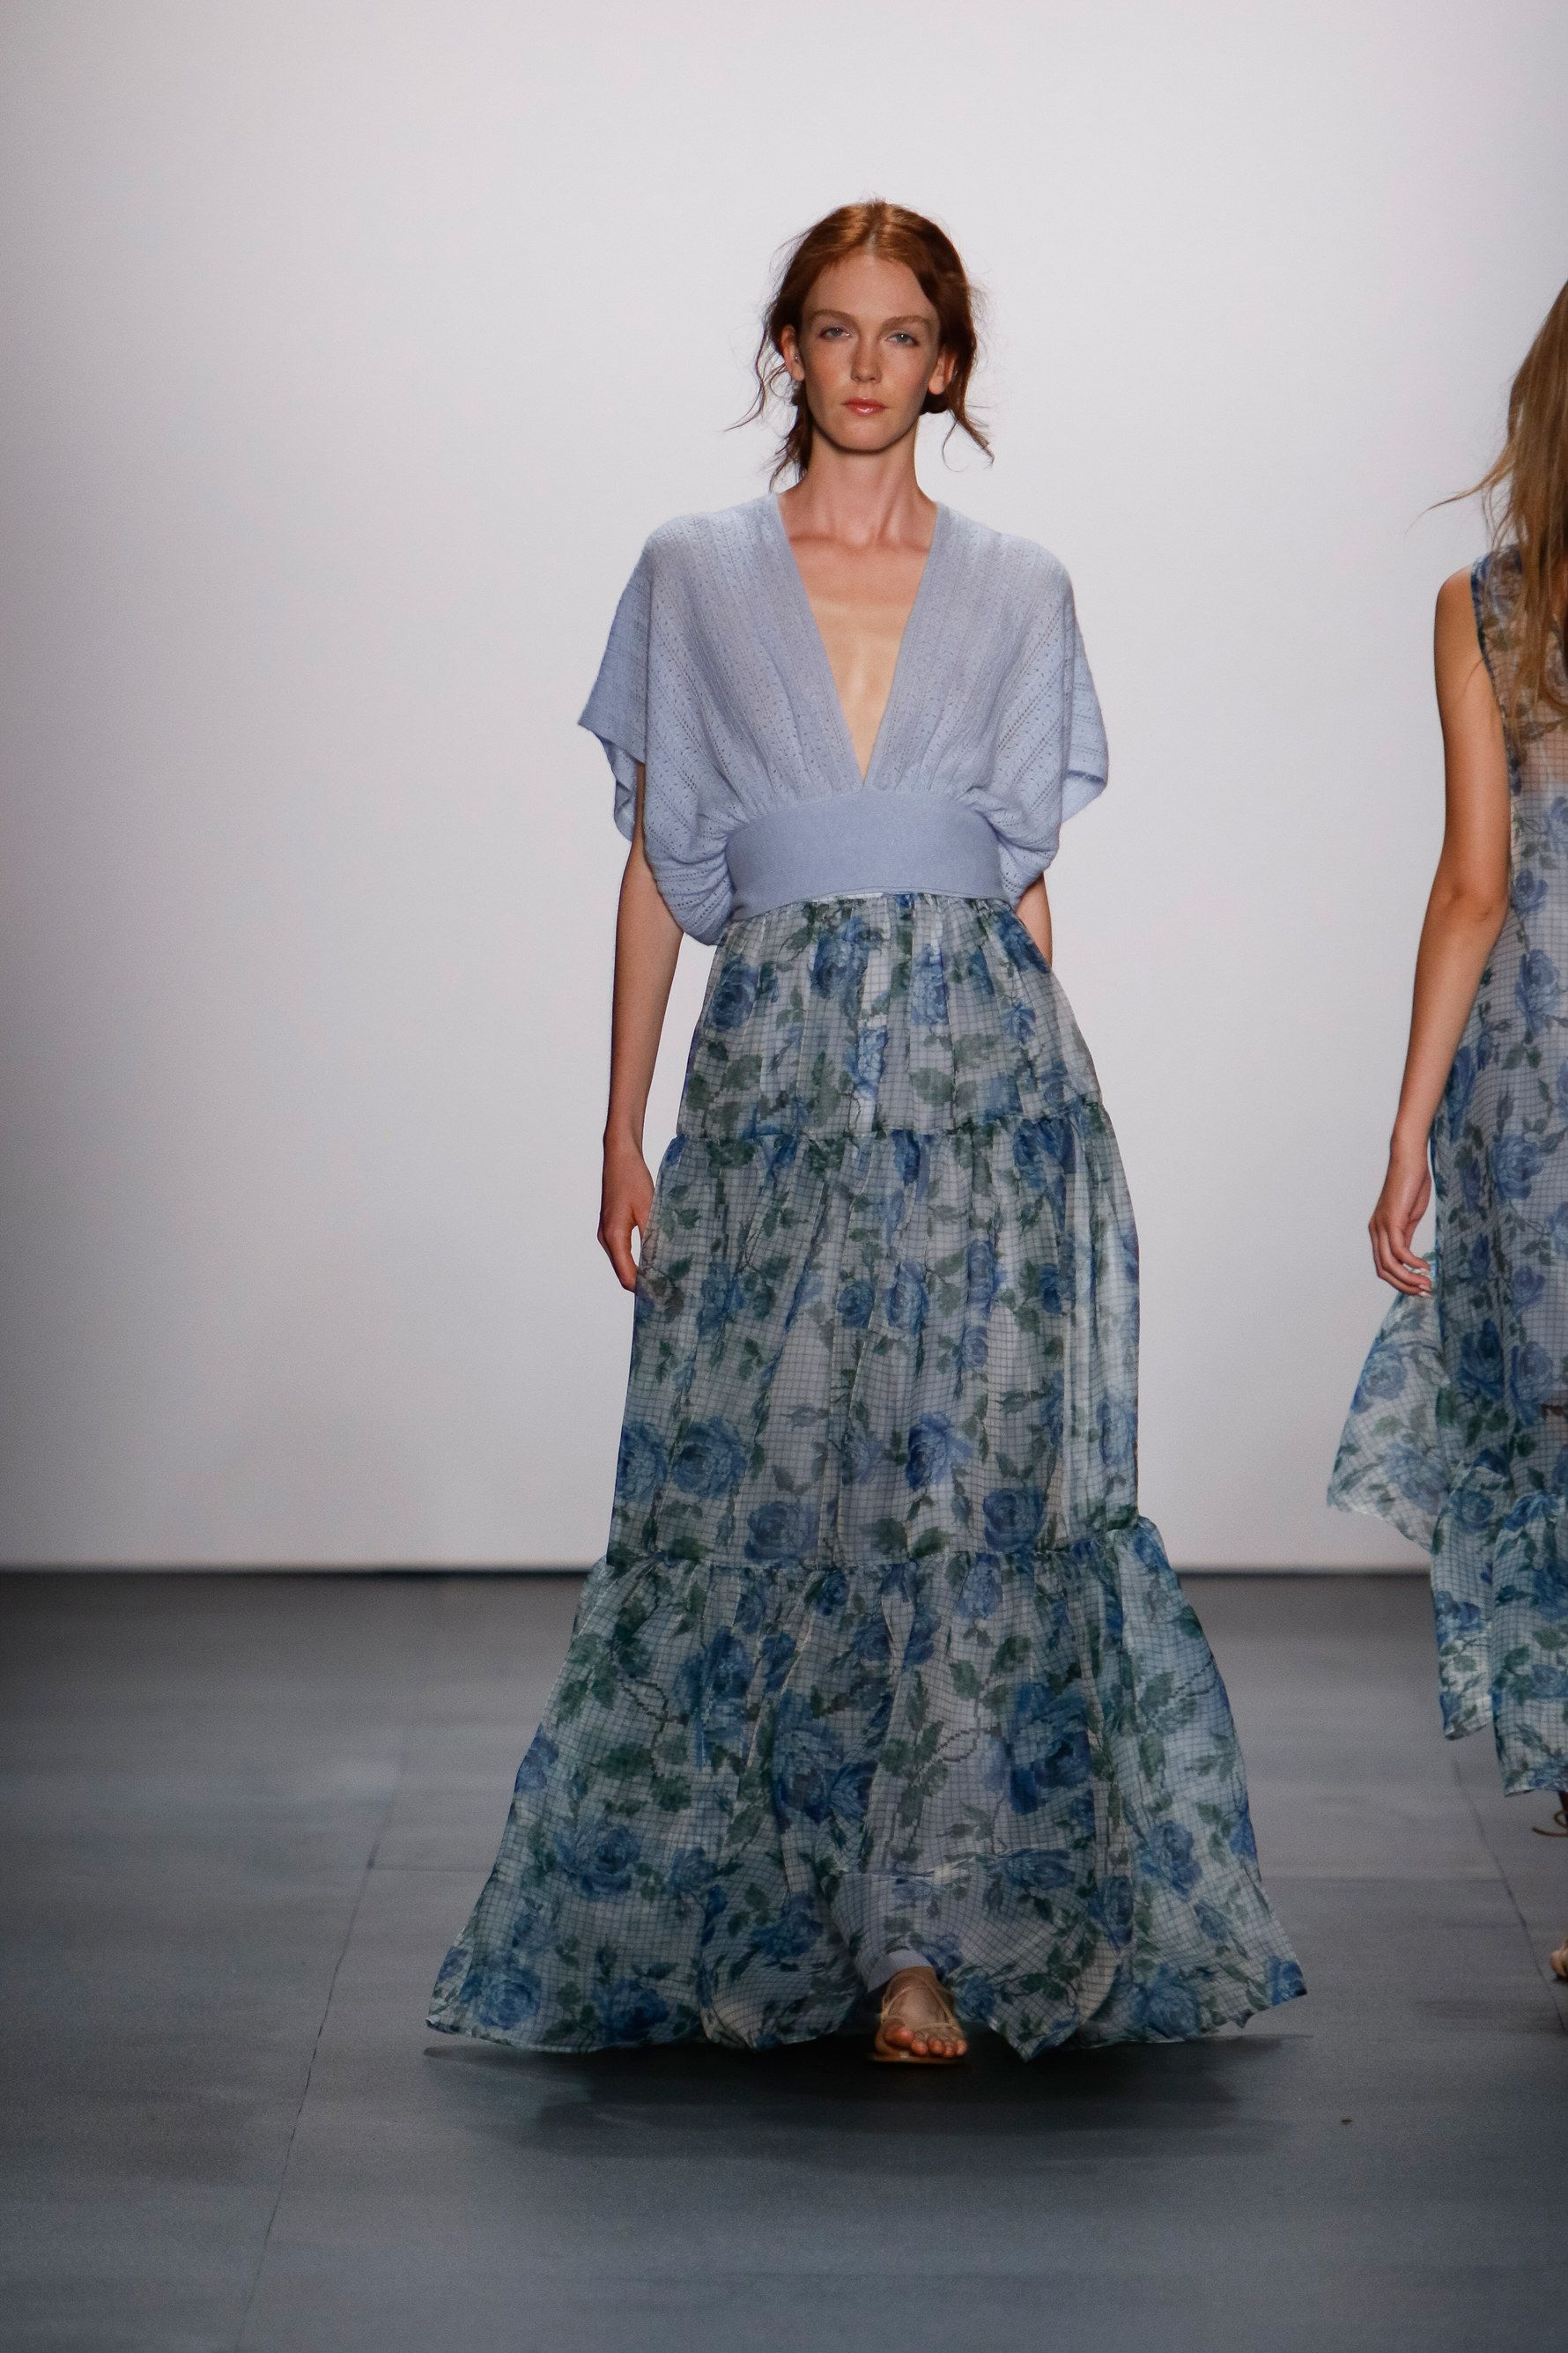 Philosophy Newsdior and transformation, How to your choose wedding music